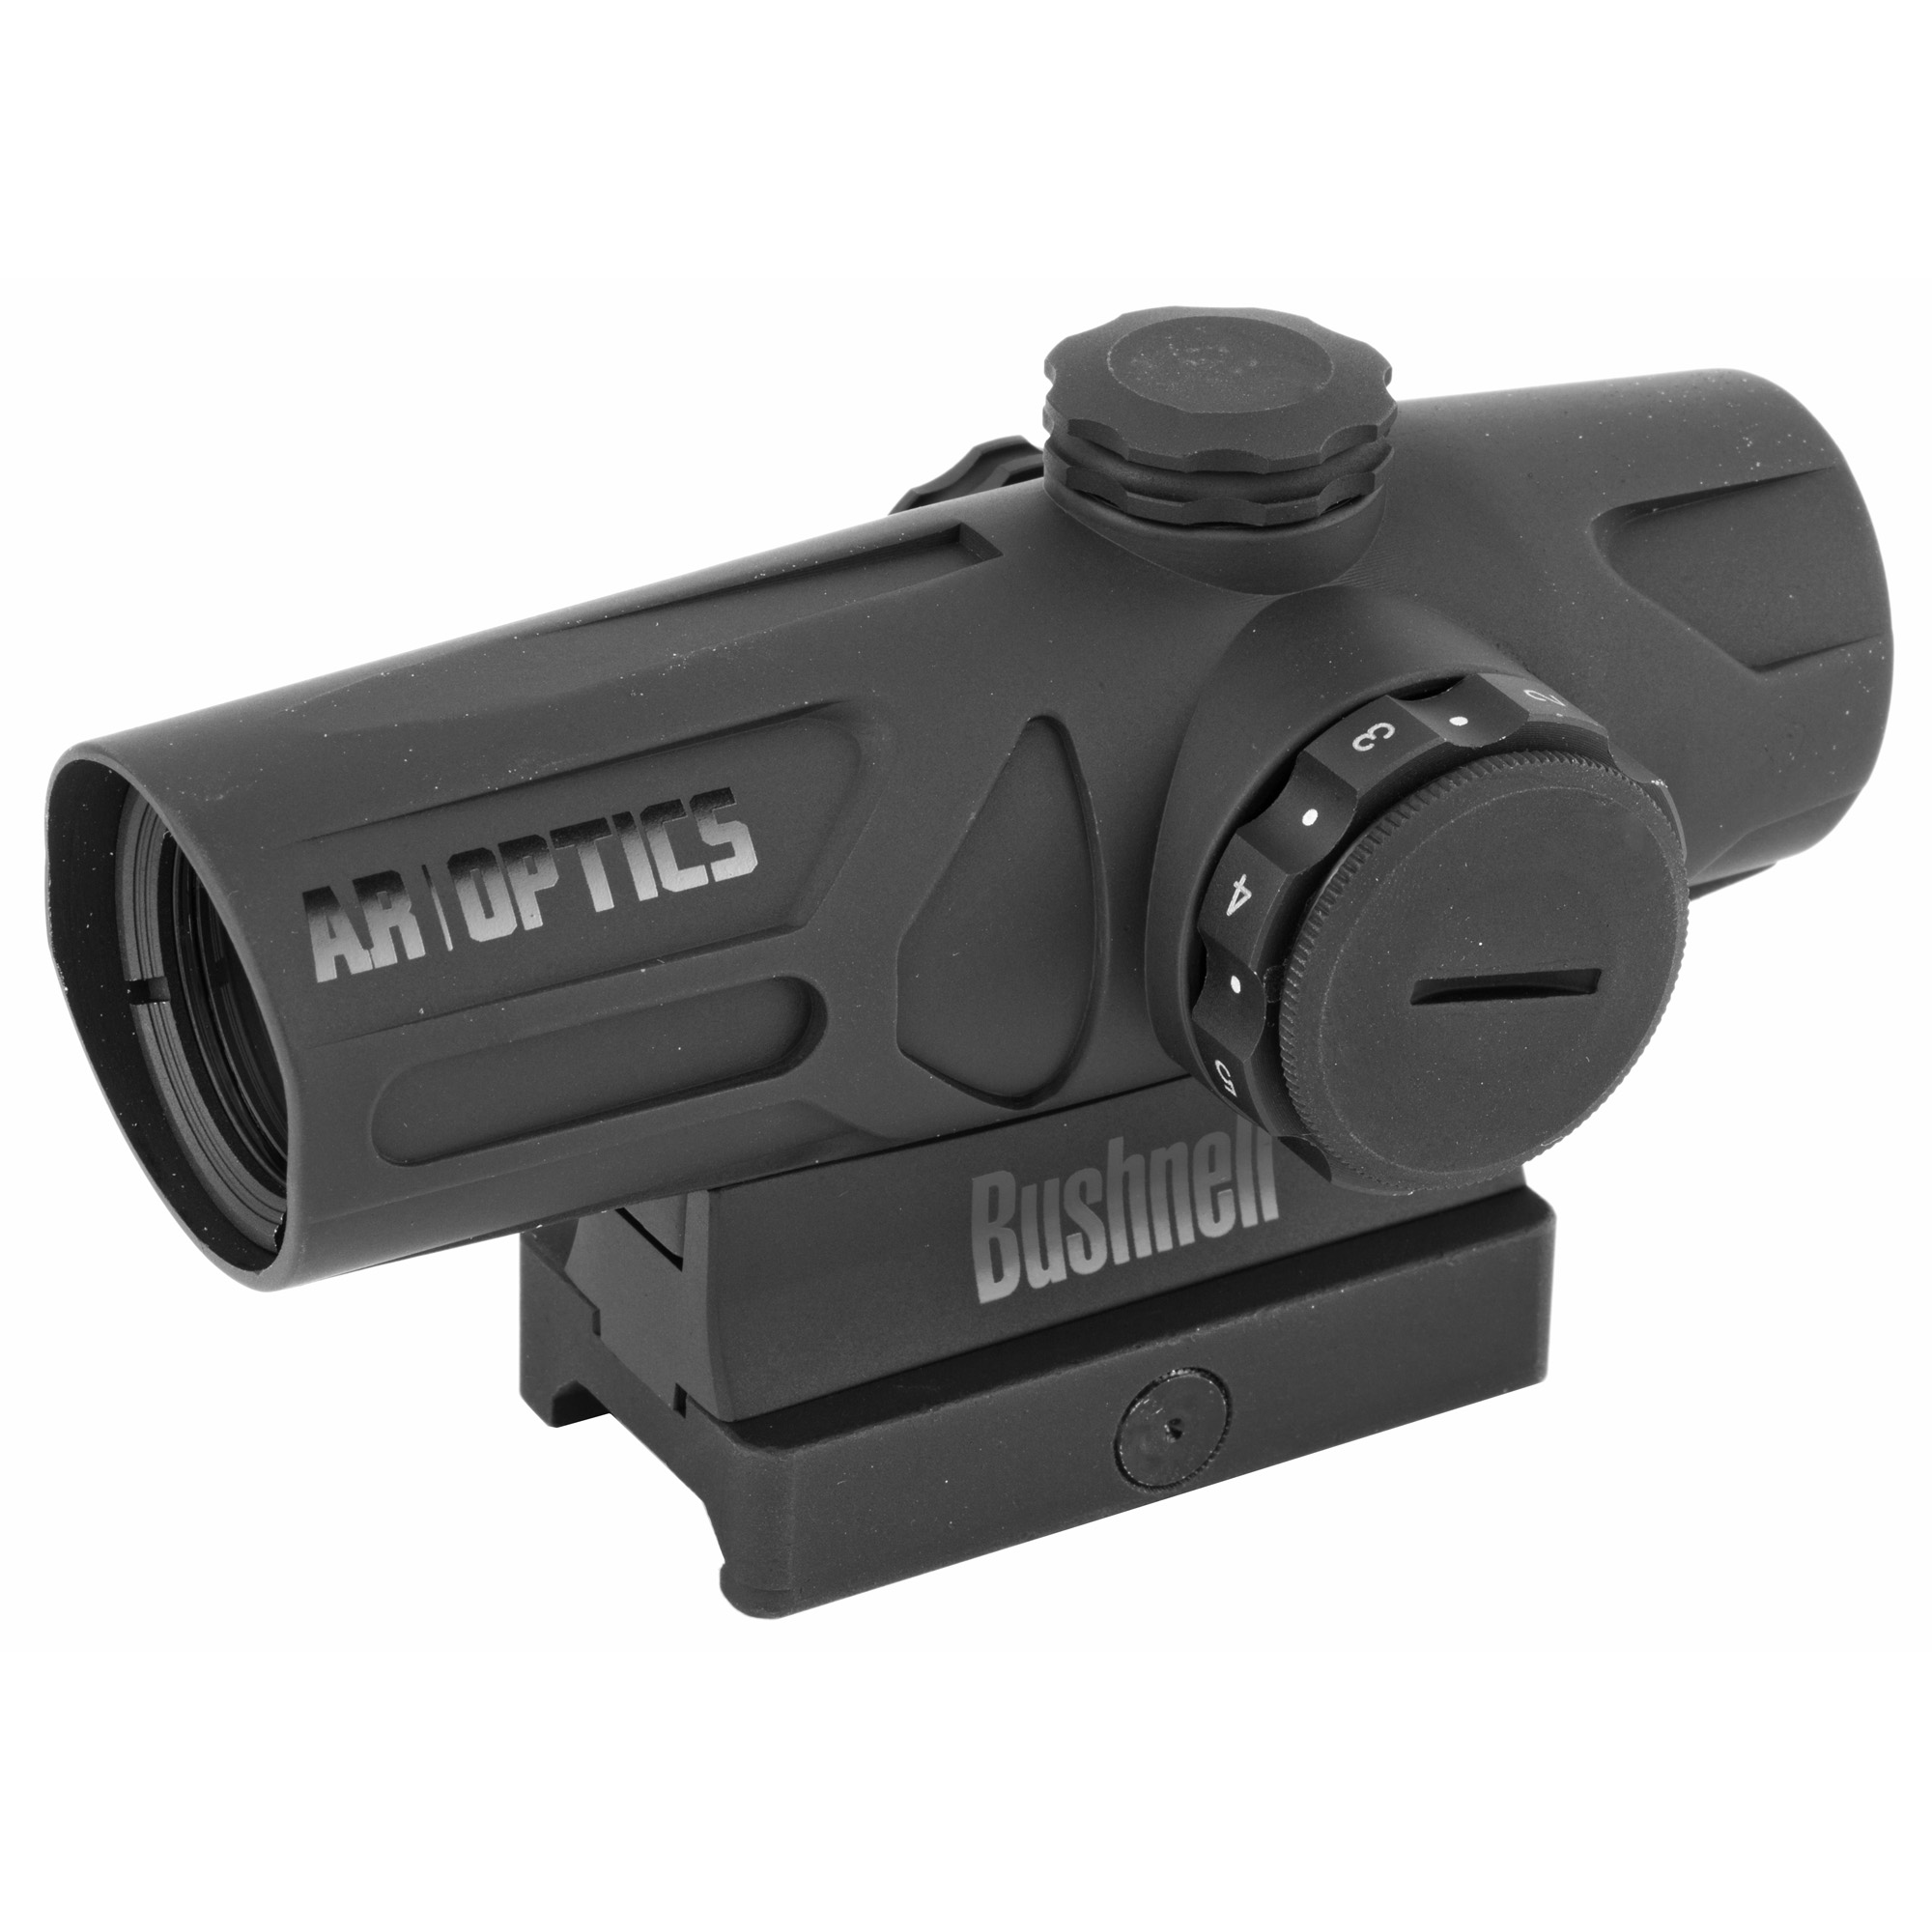 """The Bushnell AR Optics Enrage Red Dot is built to last"""" with battery life that exceeds 50""""000 hours. Multi-coated optics deliver bright"""" crisp images for easy target acquisition. The 2-MOA dot has eight brightness settings"""" with an off setting between each. The included hi-rise mount gives you everything you need"""" right out of the box. The Bushnell AR Optics Enrage is ready for action."""